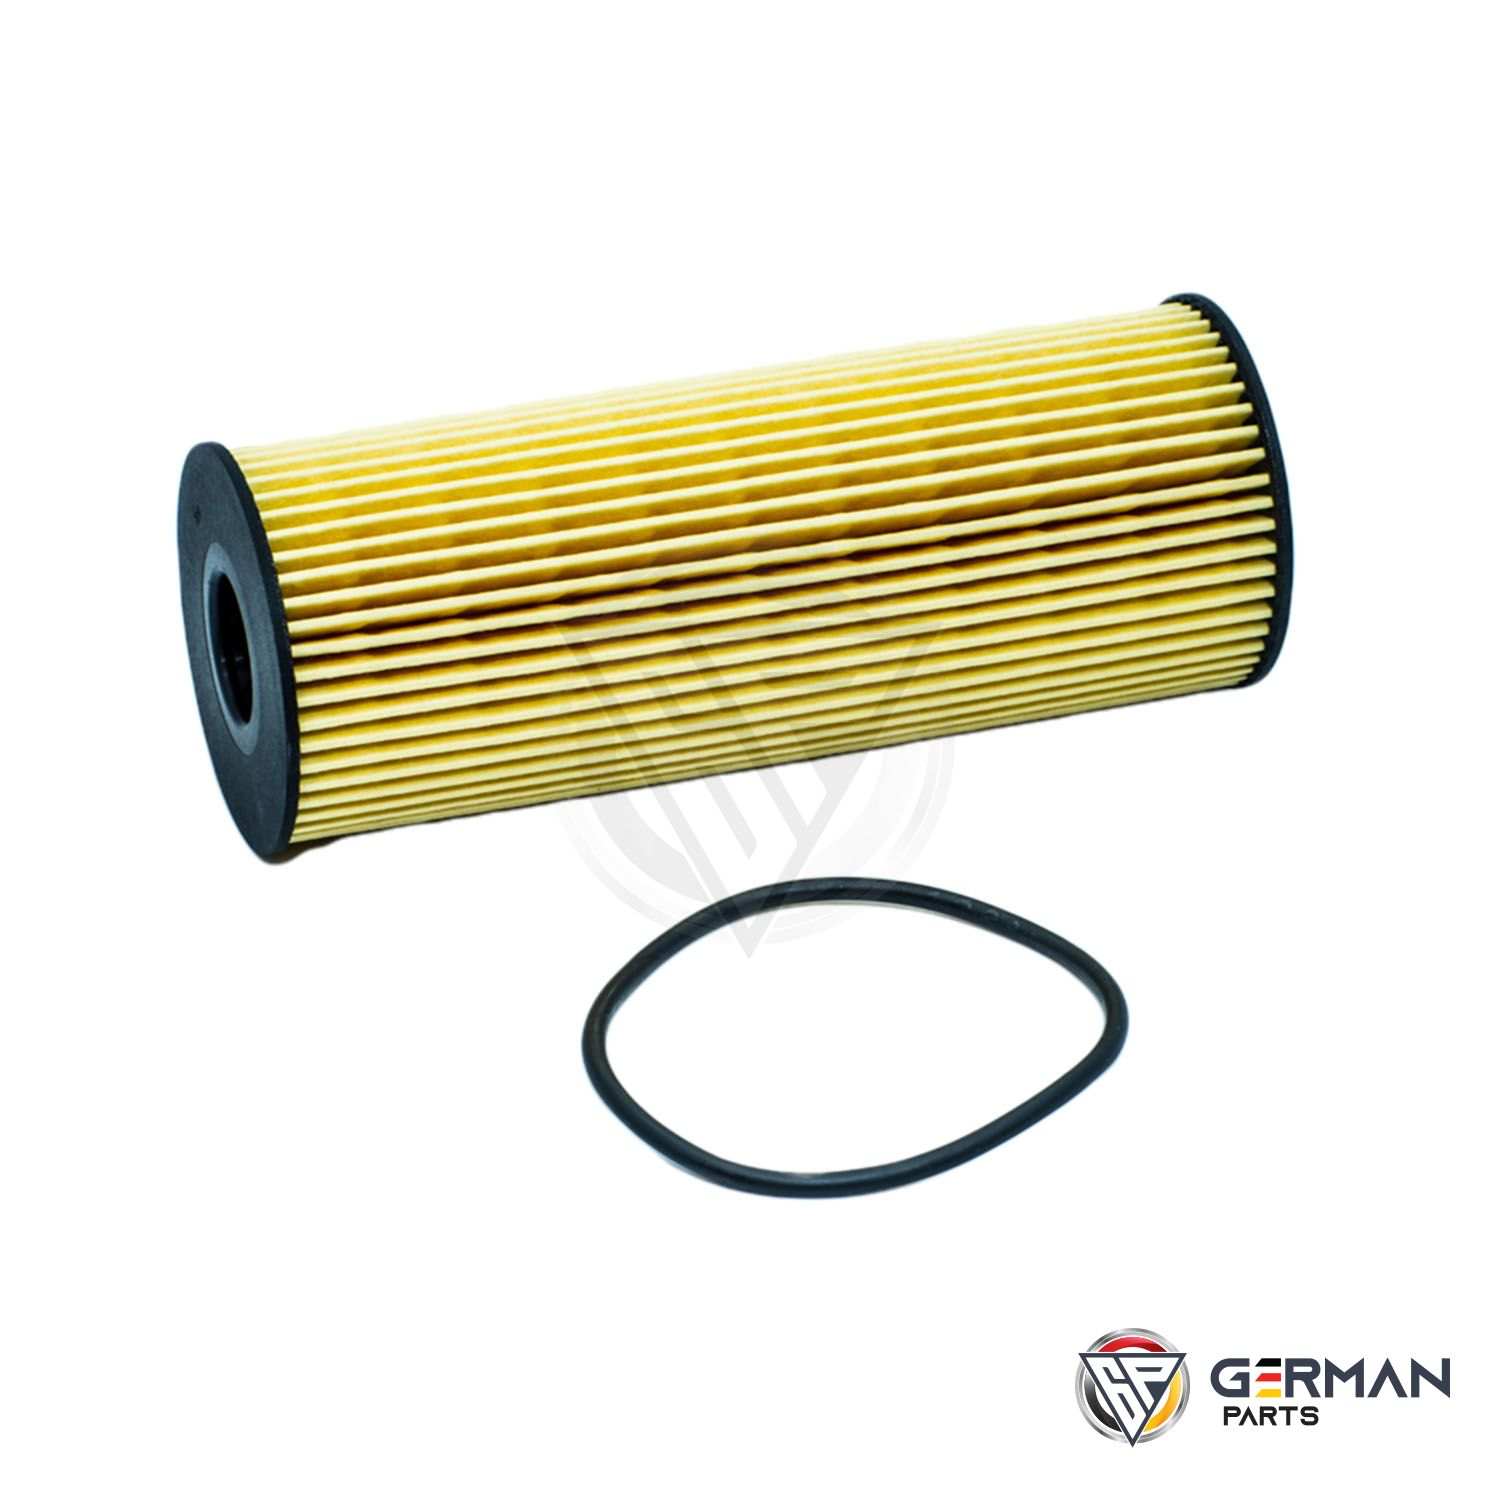 Buy Genuine Mercedes Benz Oil Filter 1041800109 - German Parts